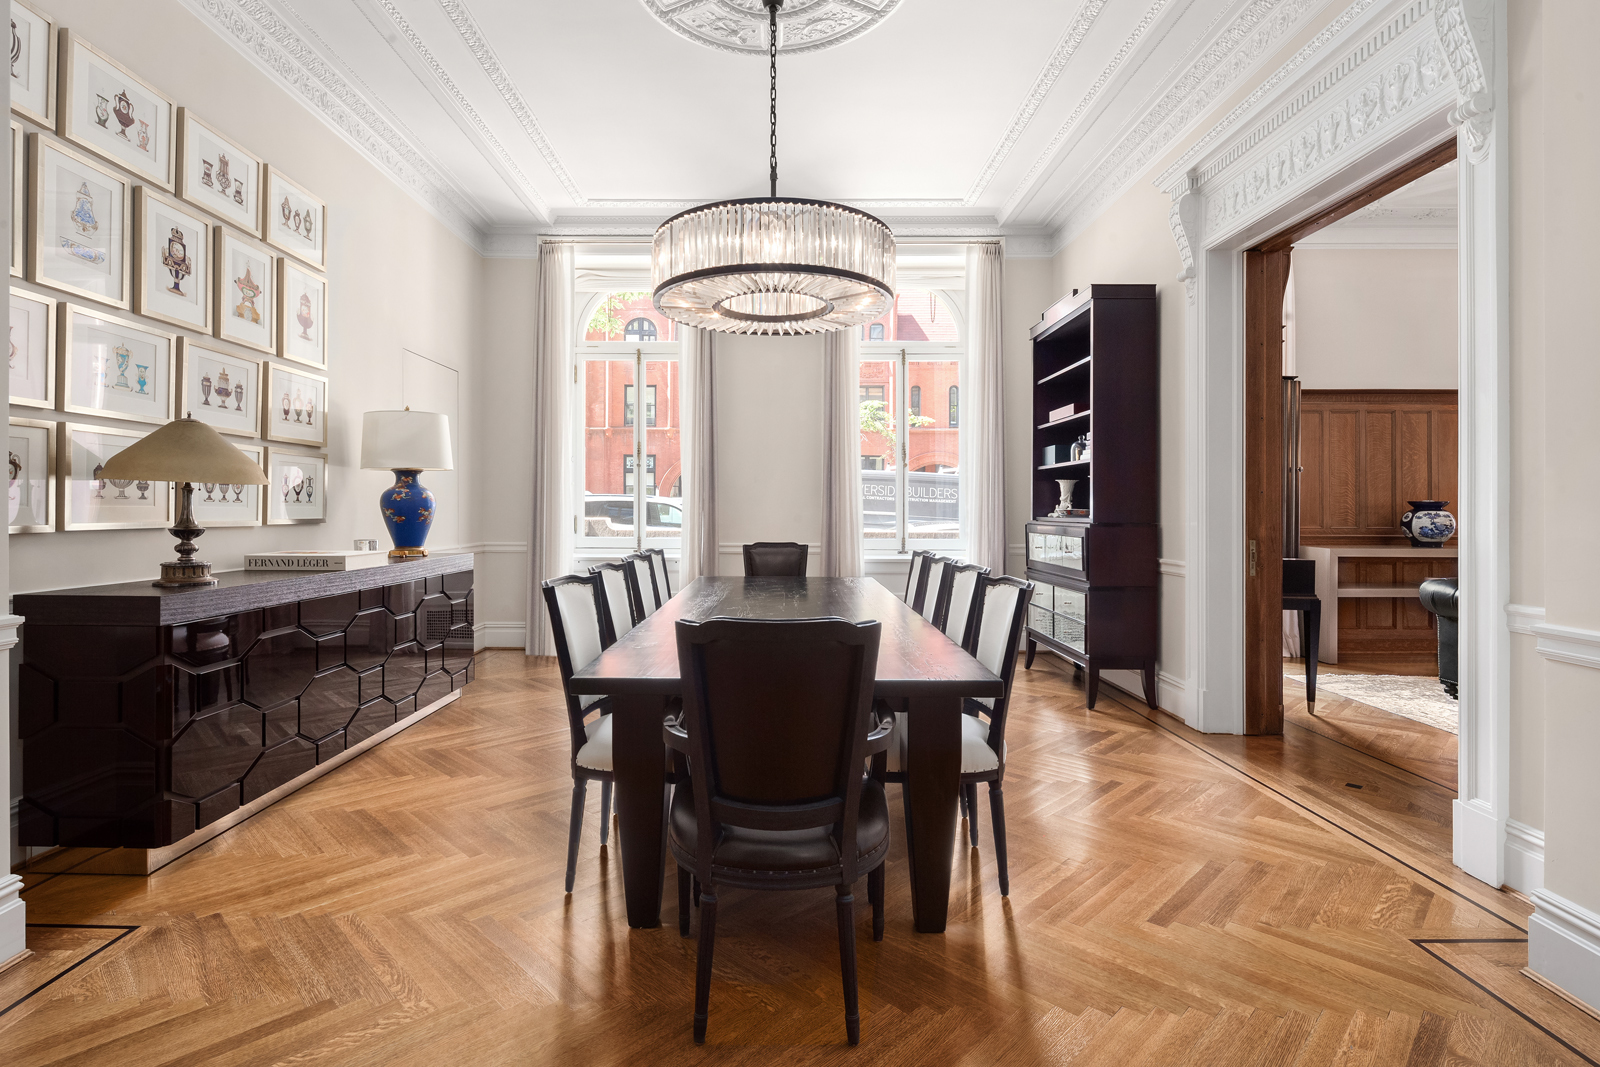 390 W END AVE 1-2F, New York, NY 10024